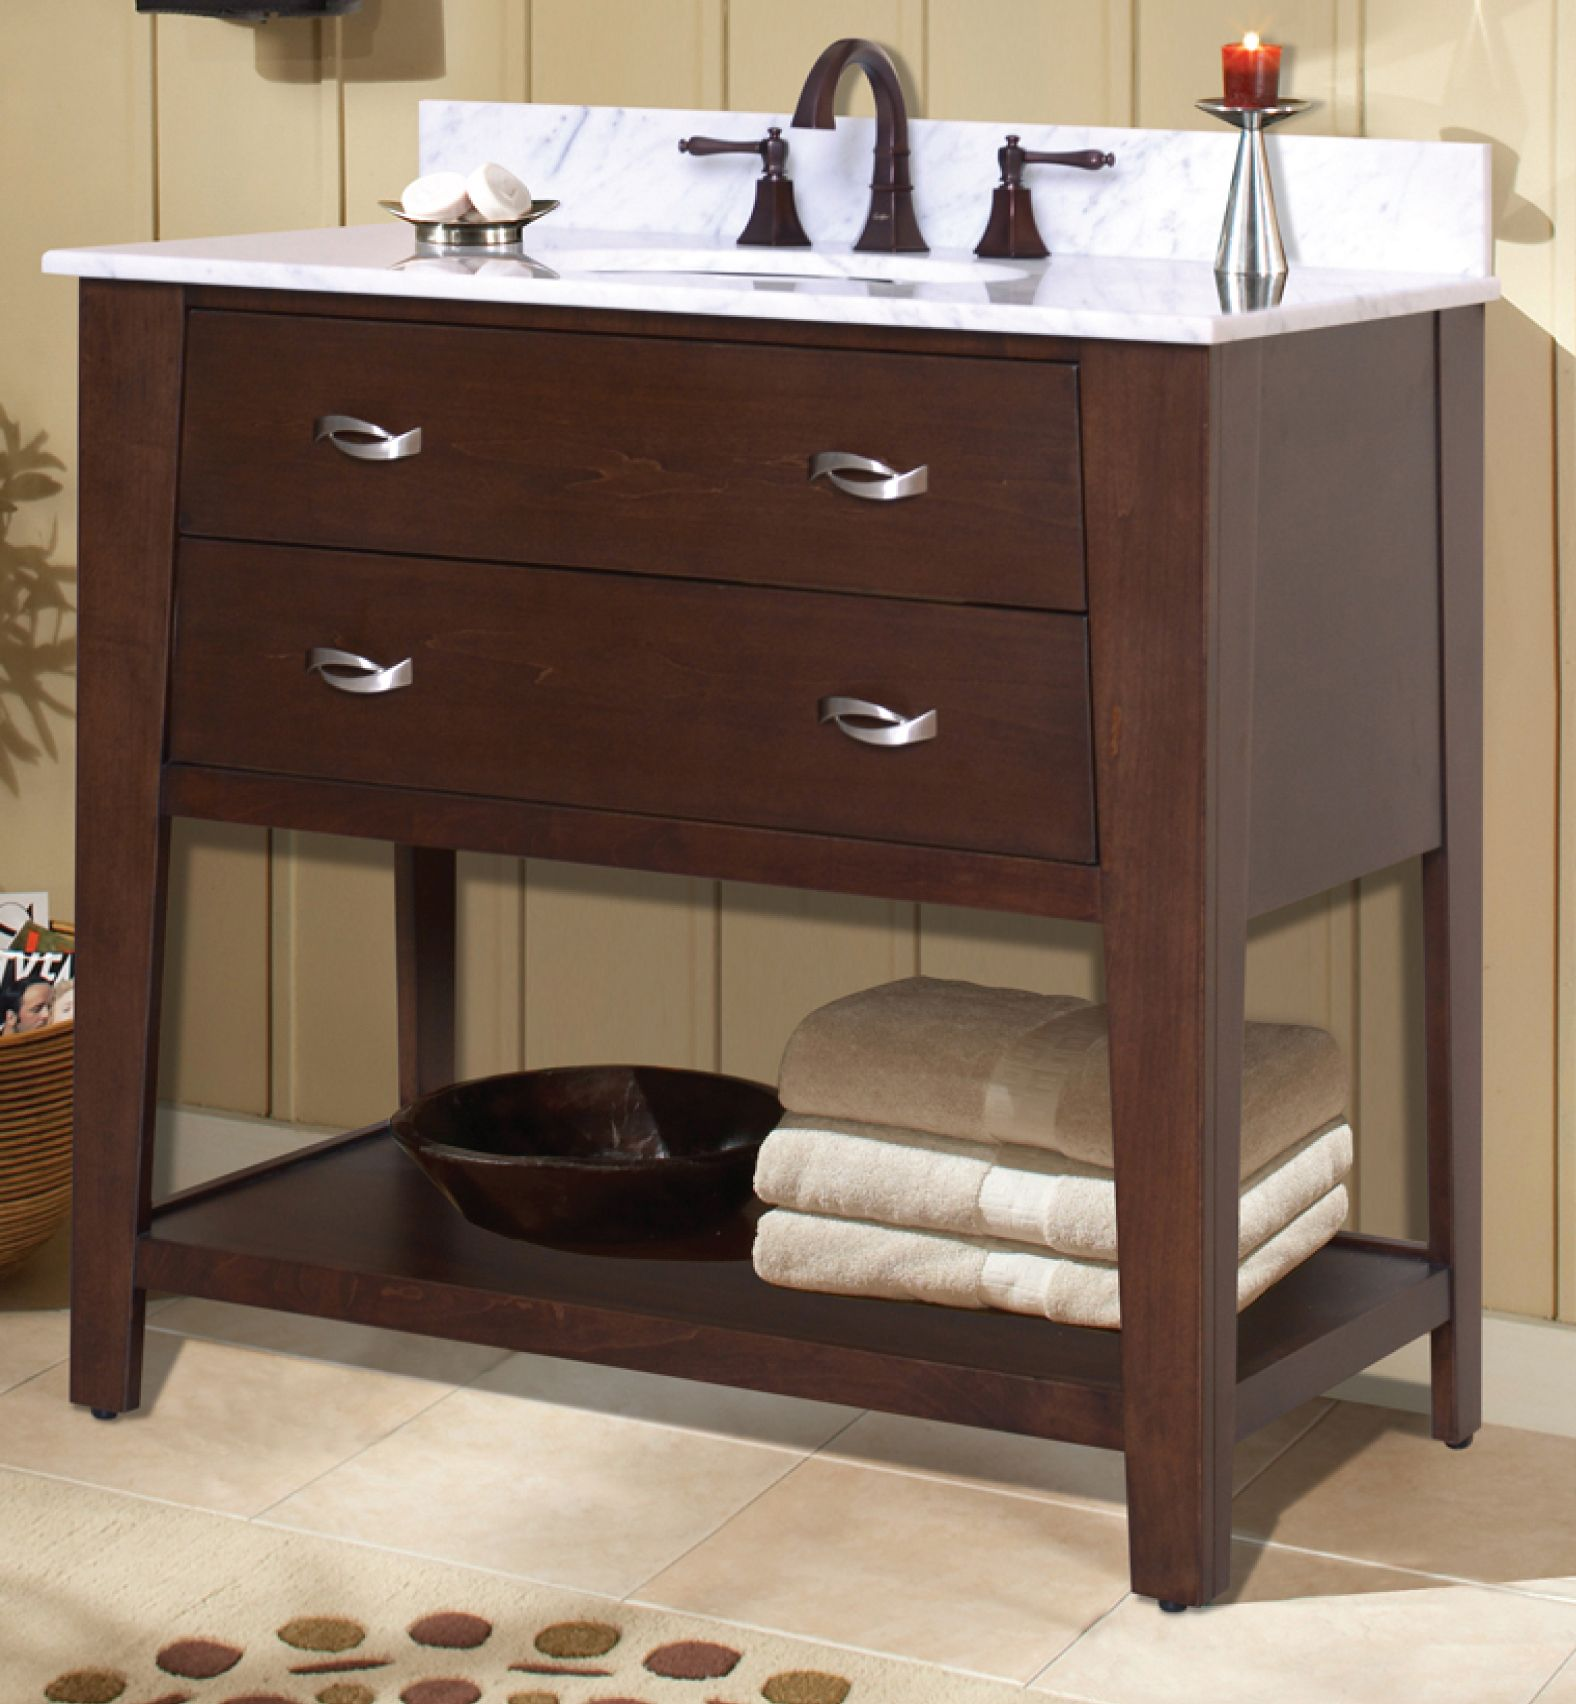 Sunny Wood Mission Oak Vanity Collection Www Sunnywood Biz Bath Cabinets Vanity Mission Oak